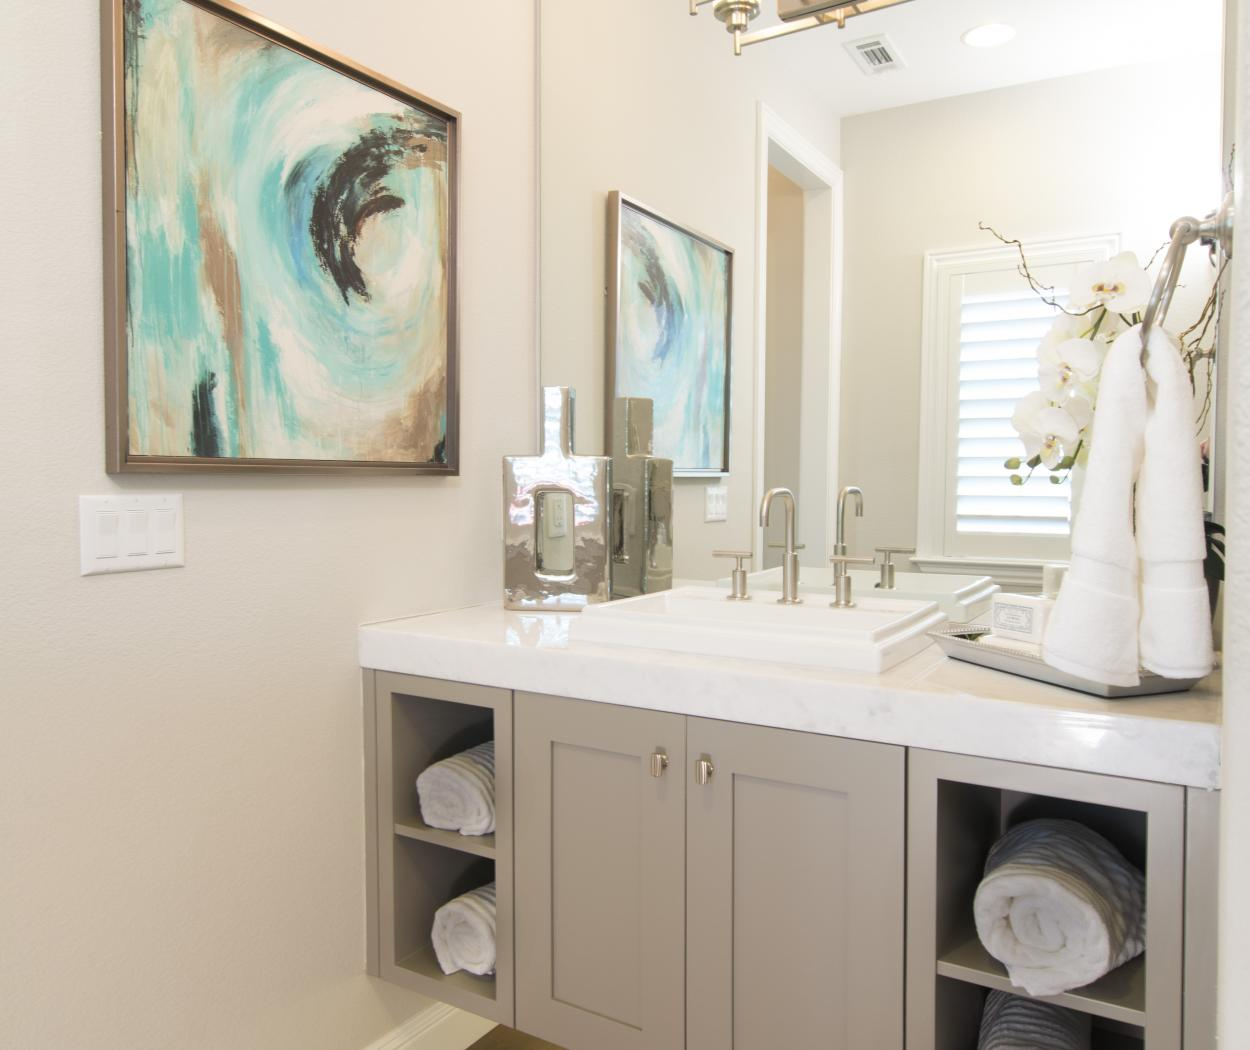 Beautiful Painted Beige, Shaker Style Bathroom Vanity with Open Shelves, a White Counter Top and a Silver Faucet